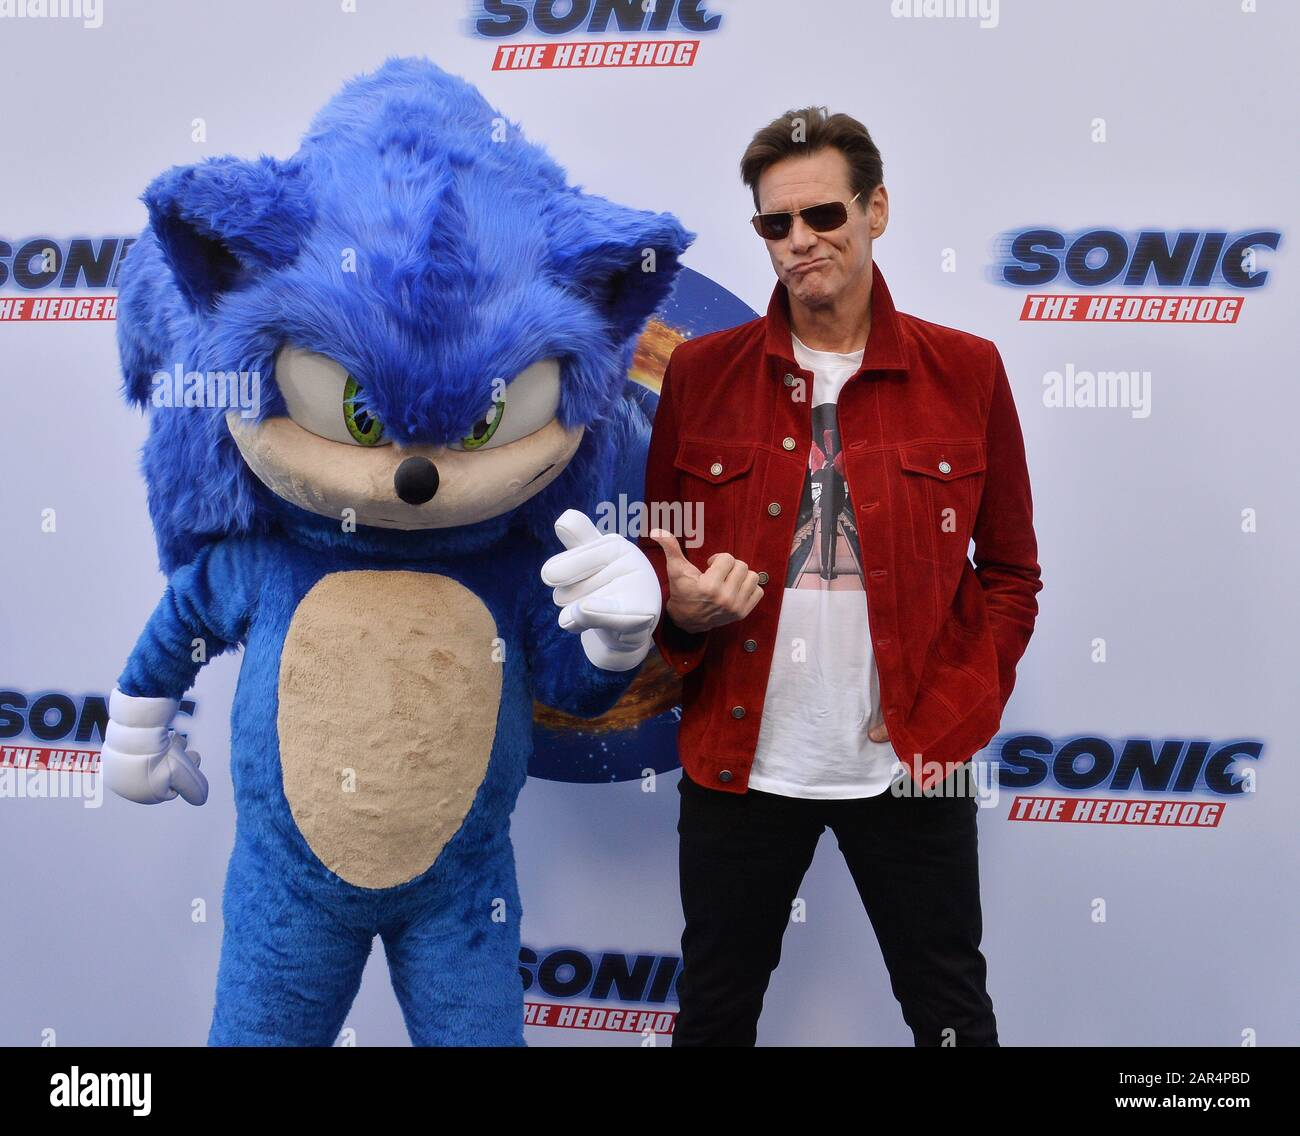 Los Angeles Usa 25th Jan 2020 Cast Member Jim Carrey Attends The Sonic The Hedgehog Family Day Event On The Paramount Pictures Lot In Los Angeles On Saturday January 25 2020 Storyline